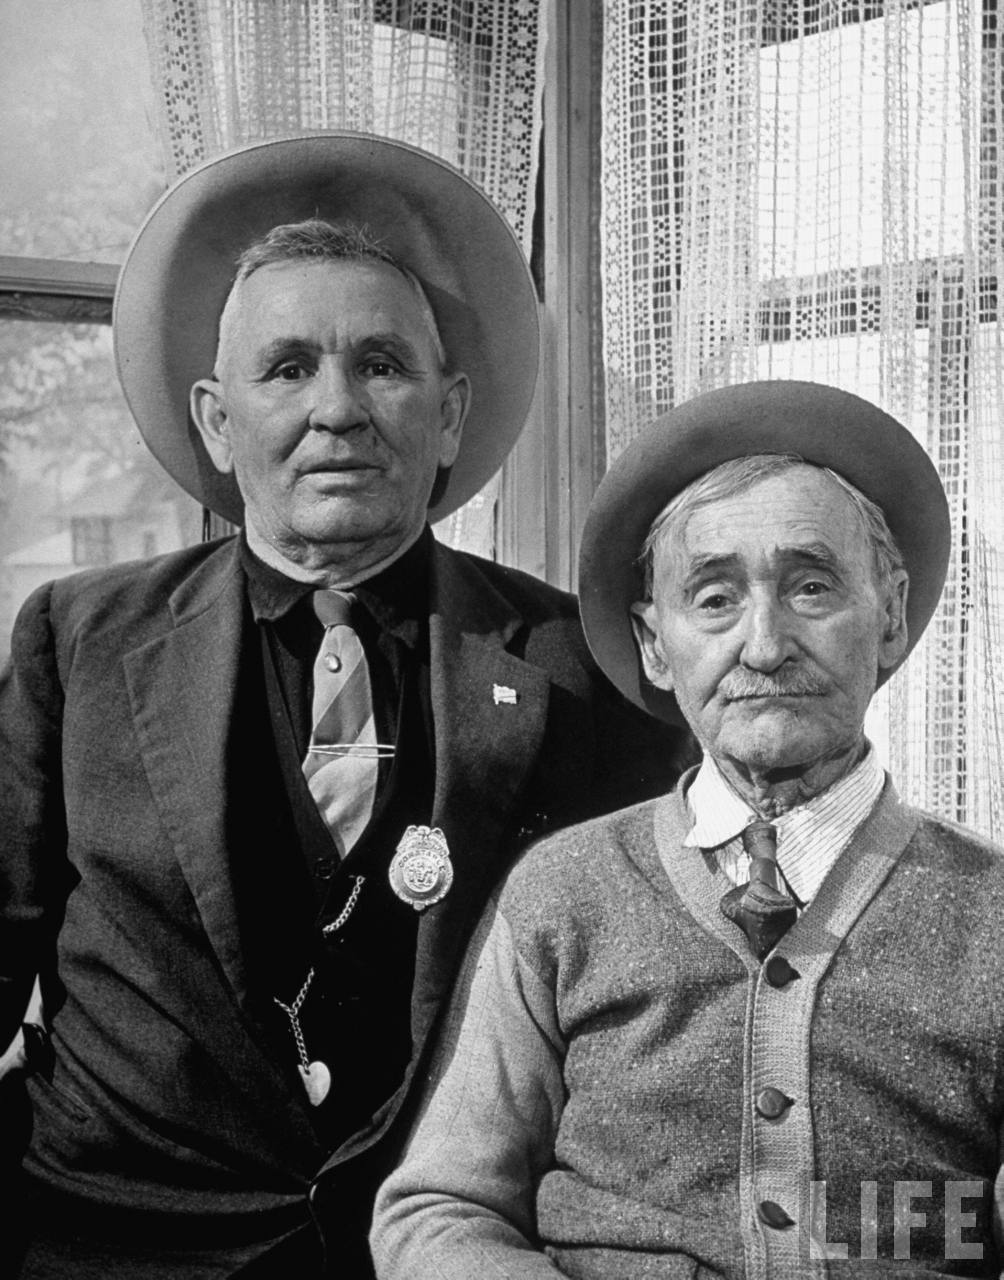 Everett Earp and his father Walter have both been local peace officers for fifty years (from photo essay re Harry Truman's Missouri).